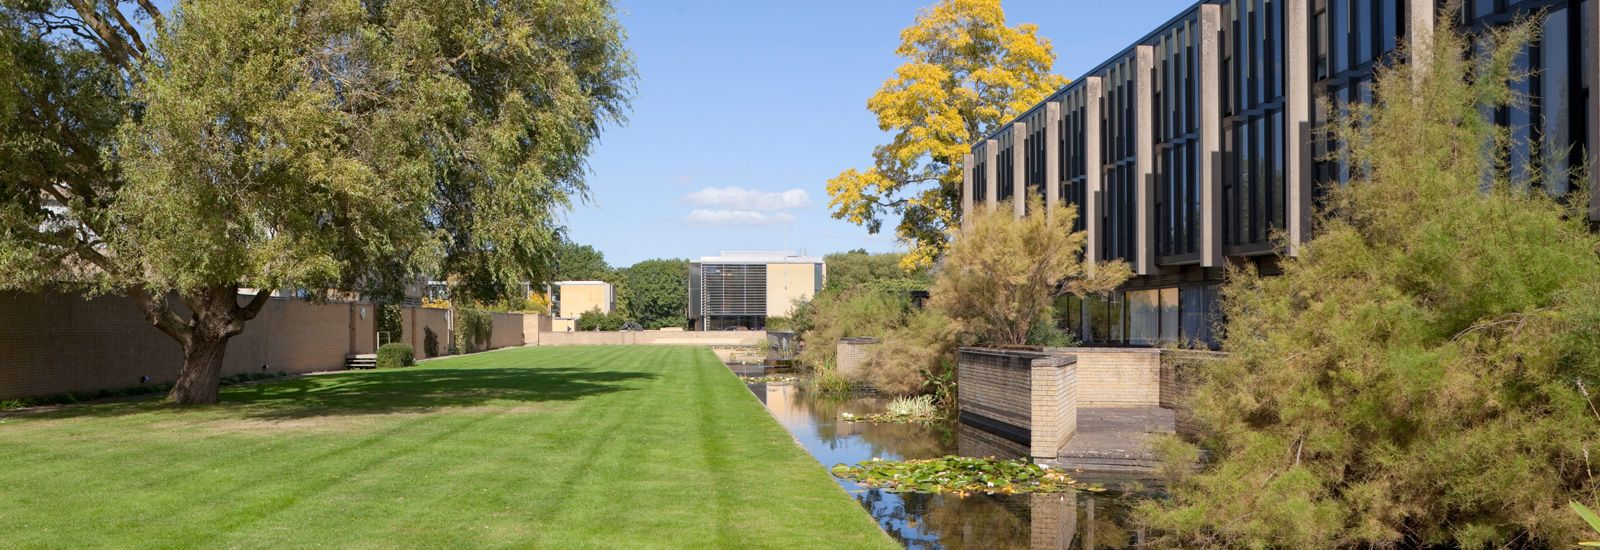 A quad, pond and buildings at St Catherine's College